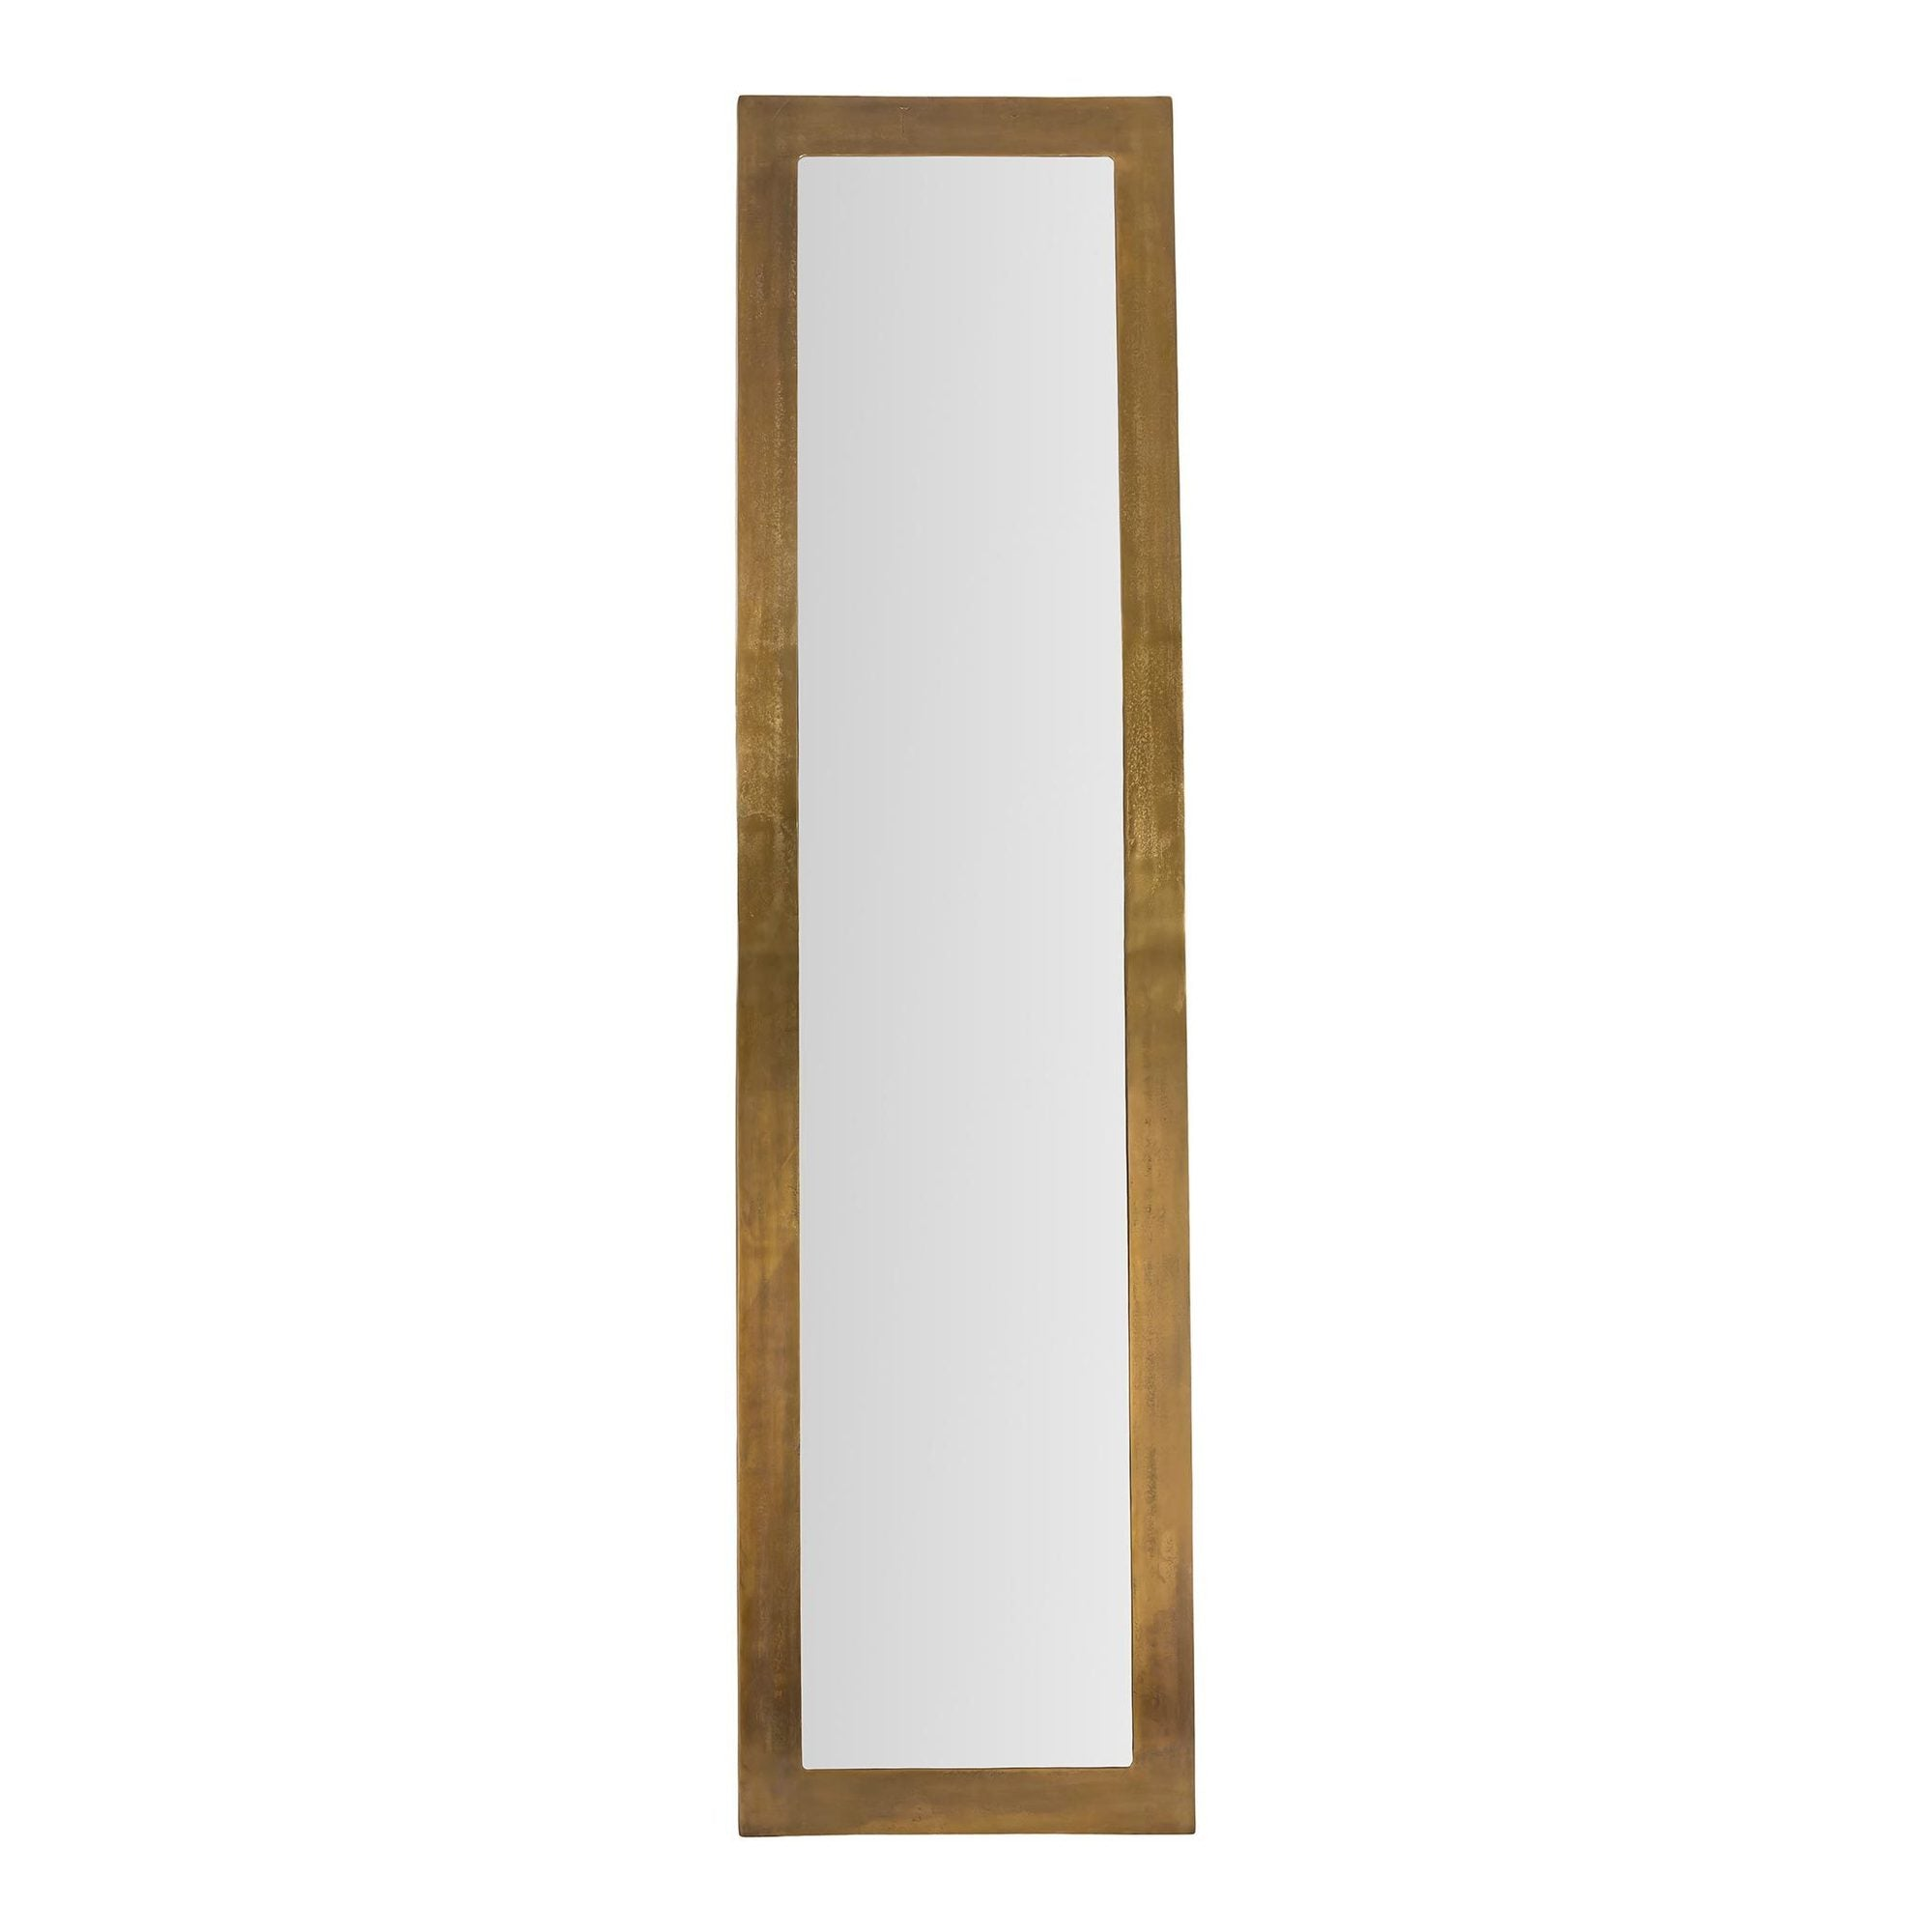 MOES-CATE TALL MIRROR-Floor Mirrors-MODTEMPO